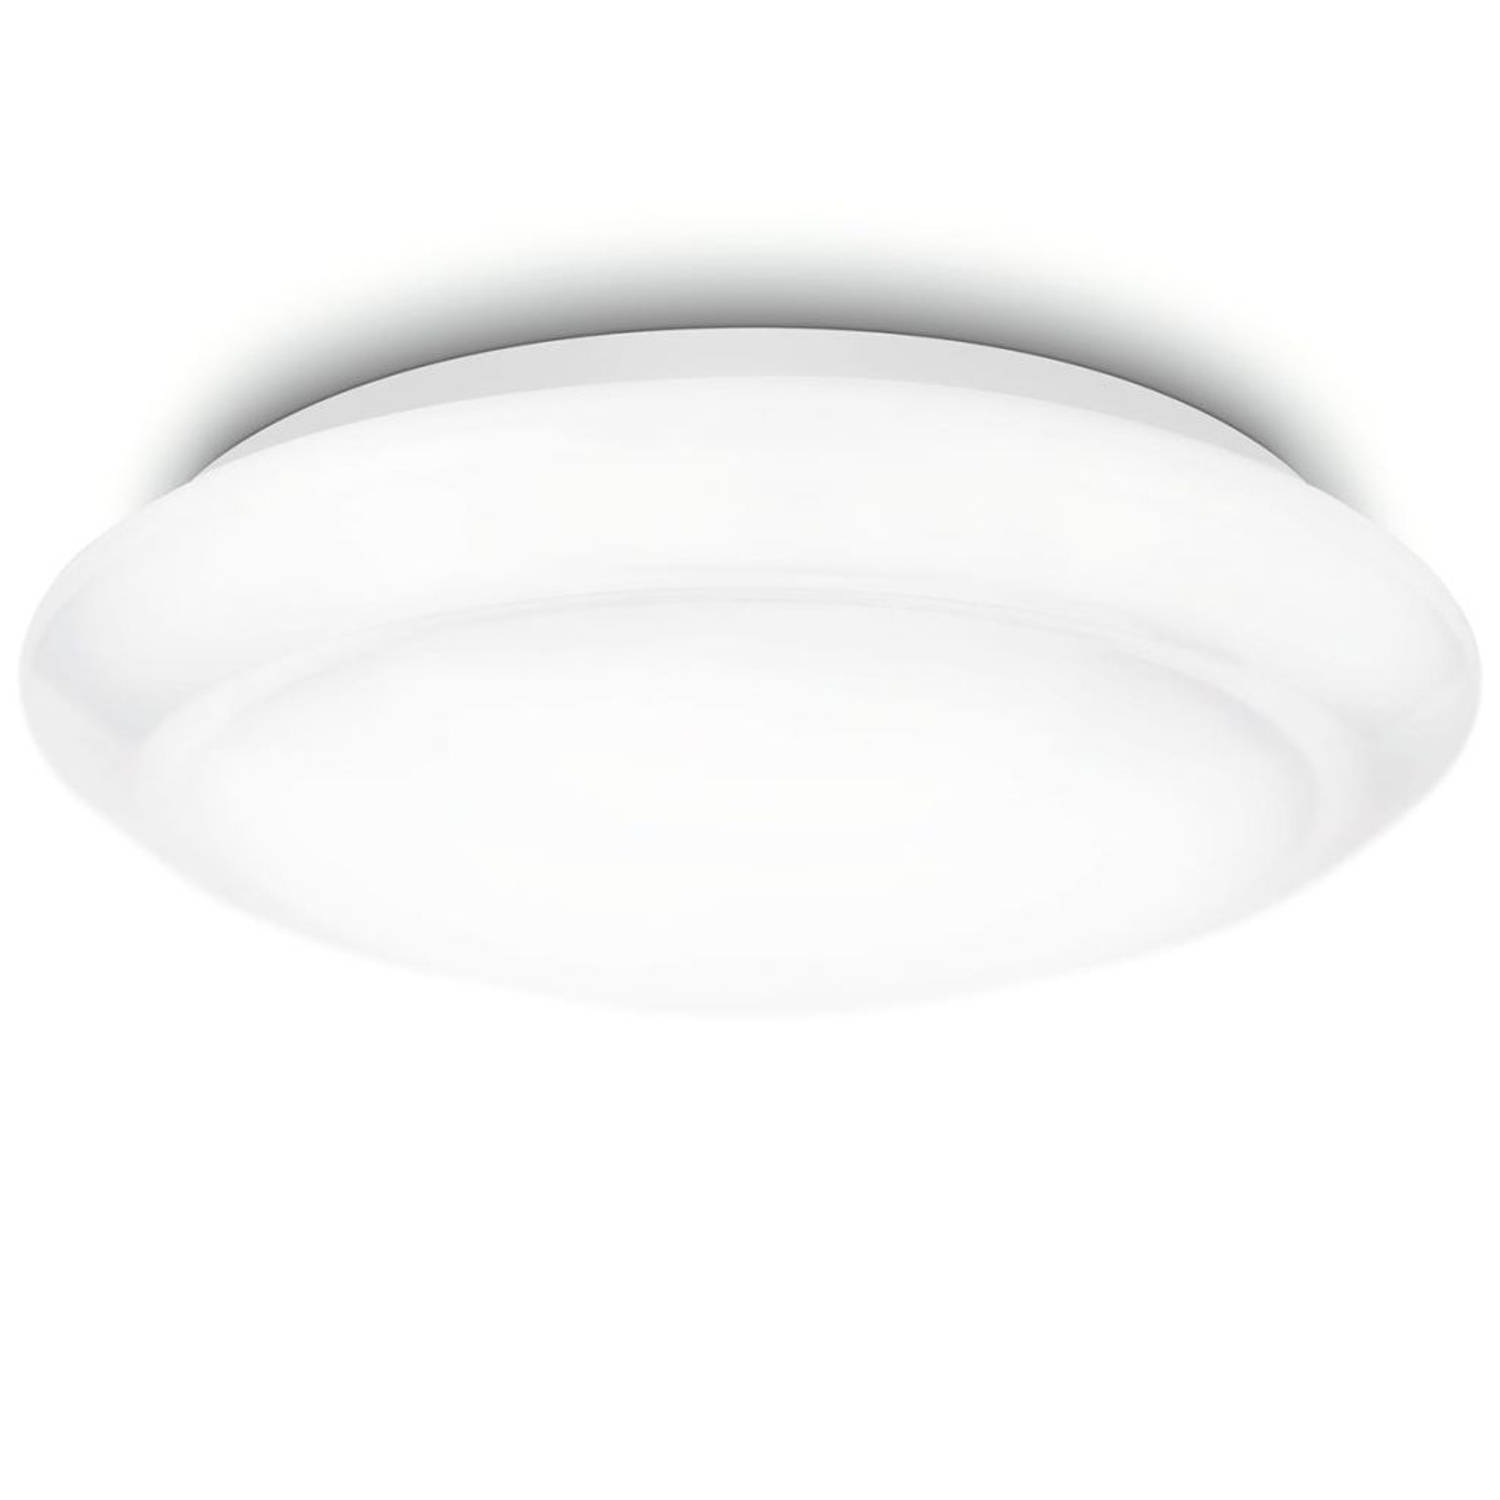 Philips Plafondlamp myLiving Cinnabar LED 4x1,5 W wit 333613116